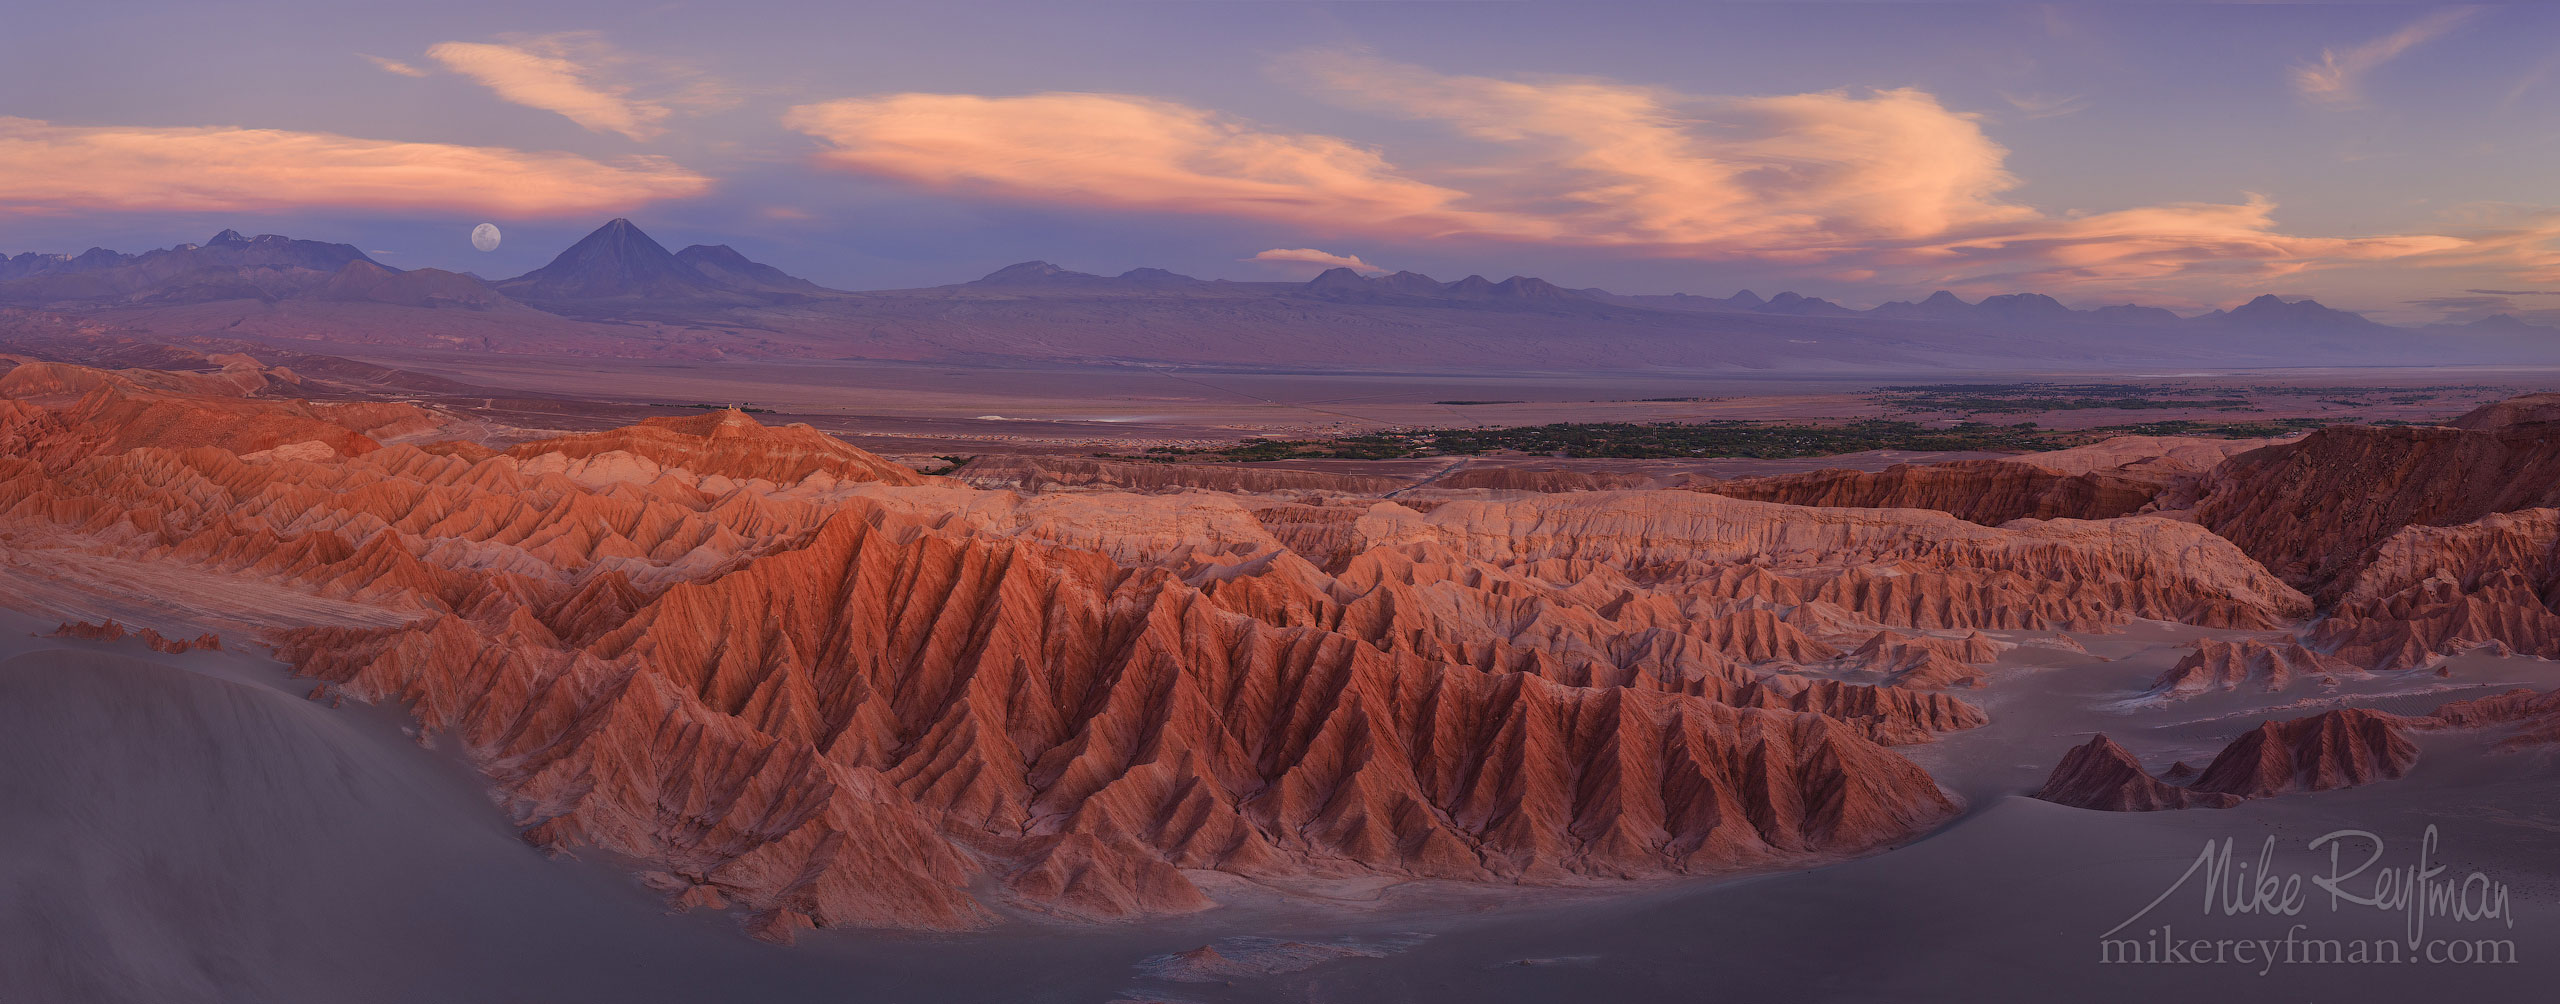 AA1-D1D8605_Pano_1x2.55 - Atacama and Altiplano. The Driest Desert and The High Plain - Mike Reyfman Photography